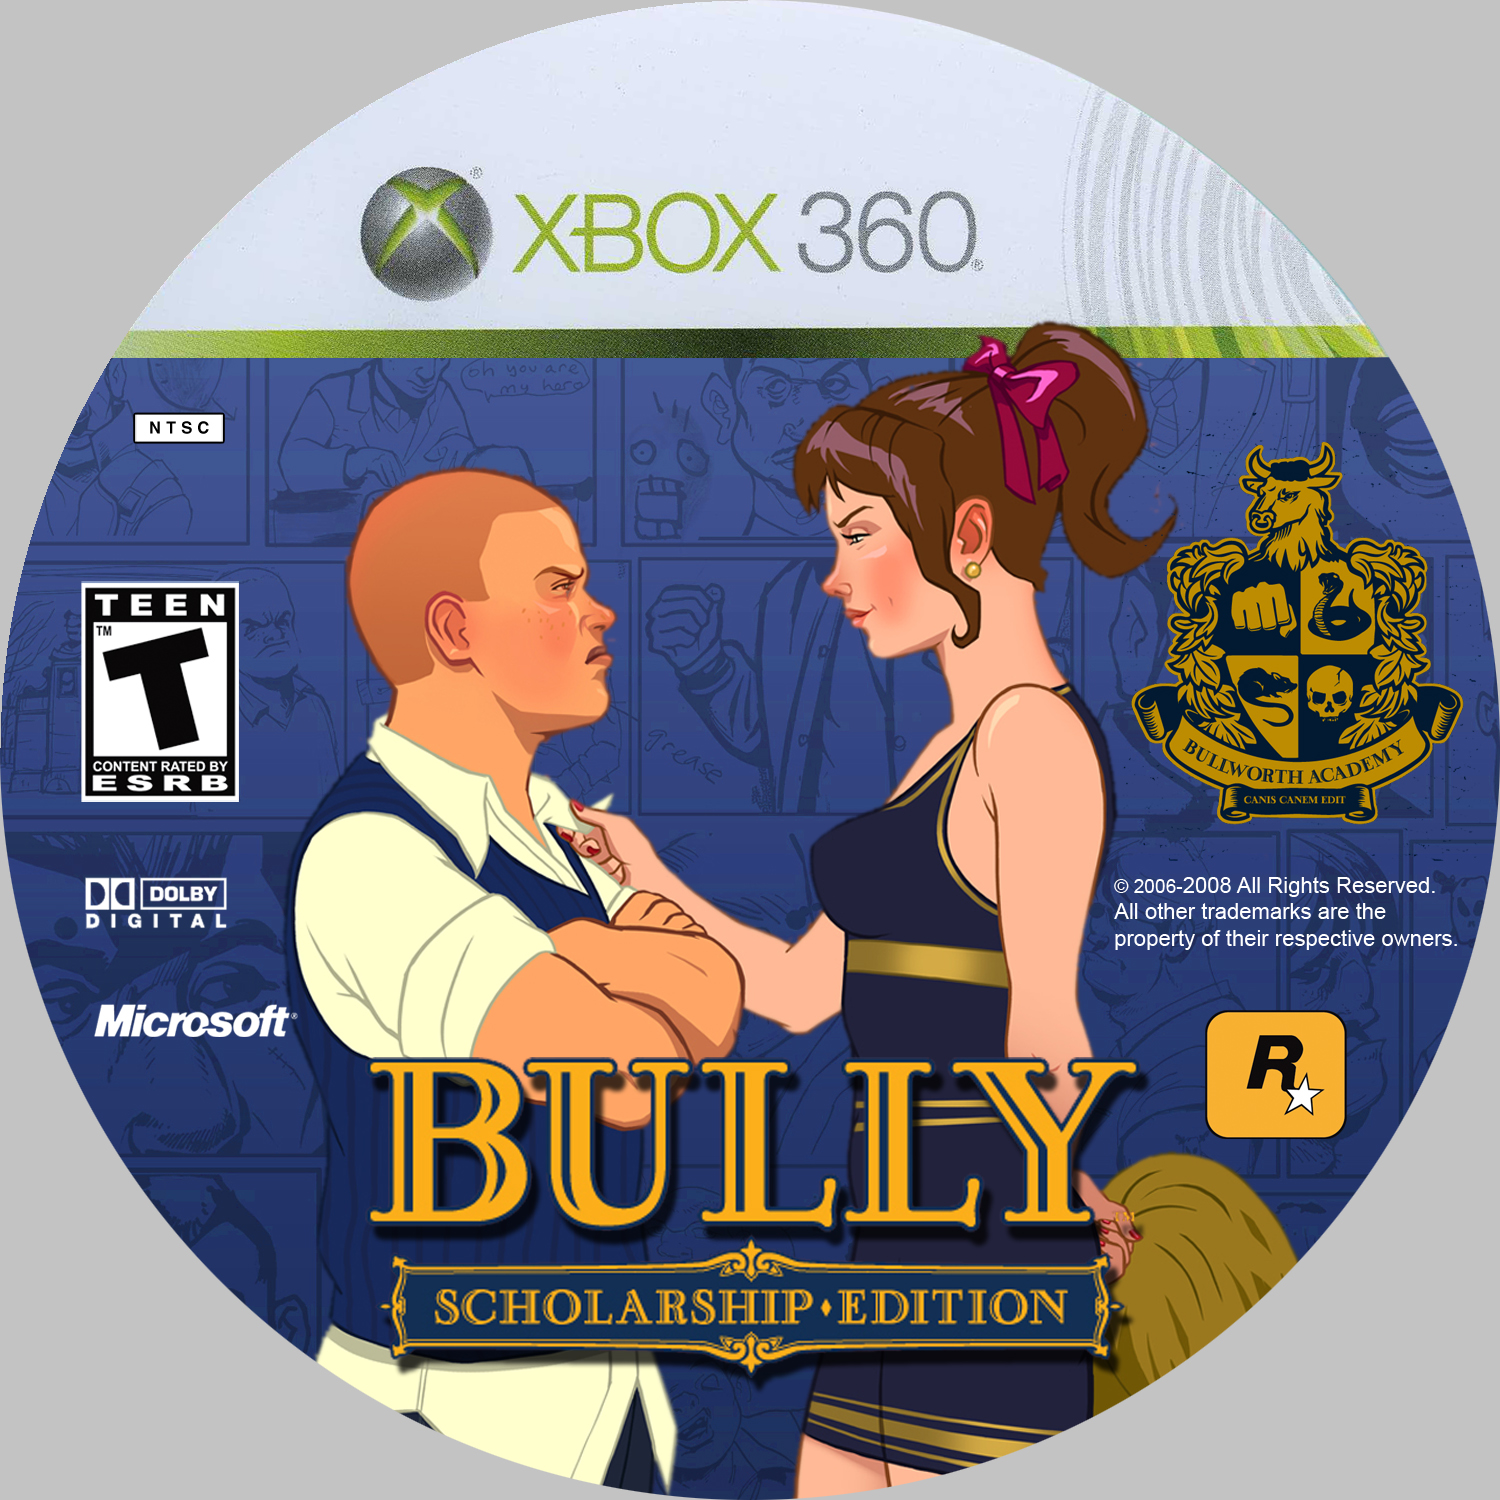 Bully 2 Download Related Keywords & Suggestions - Bully 2